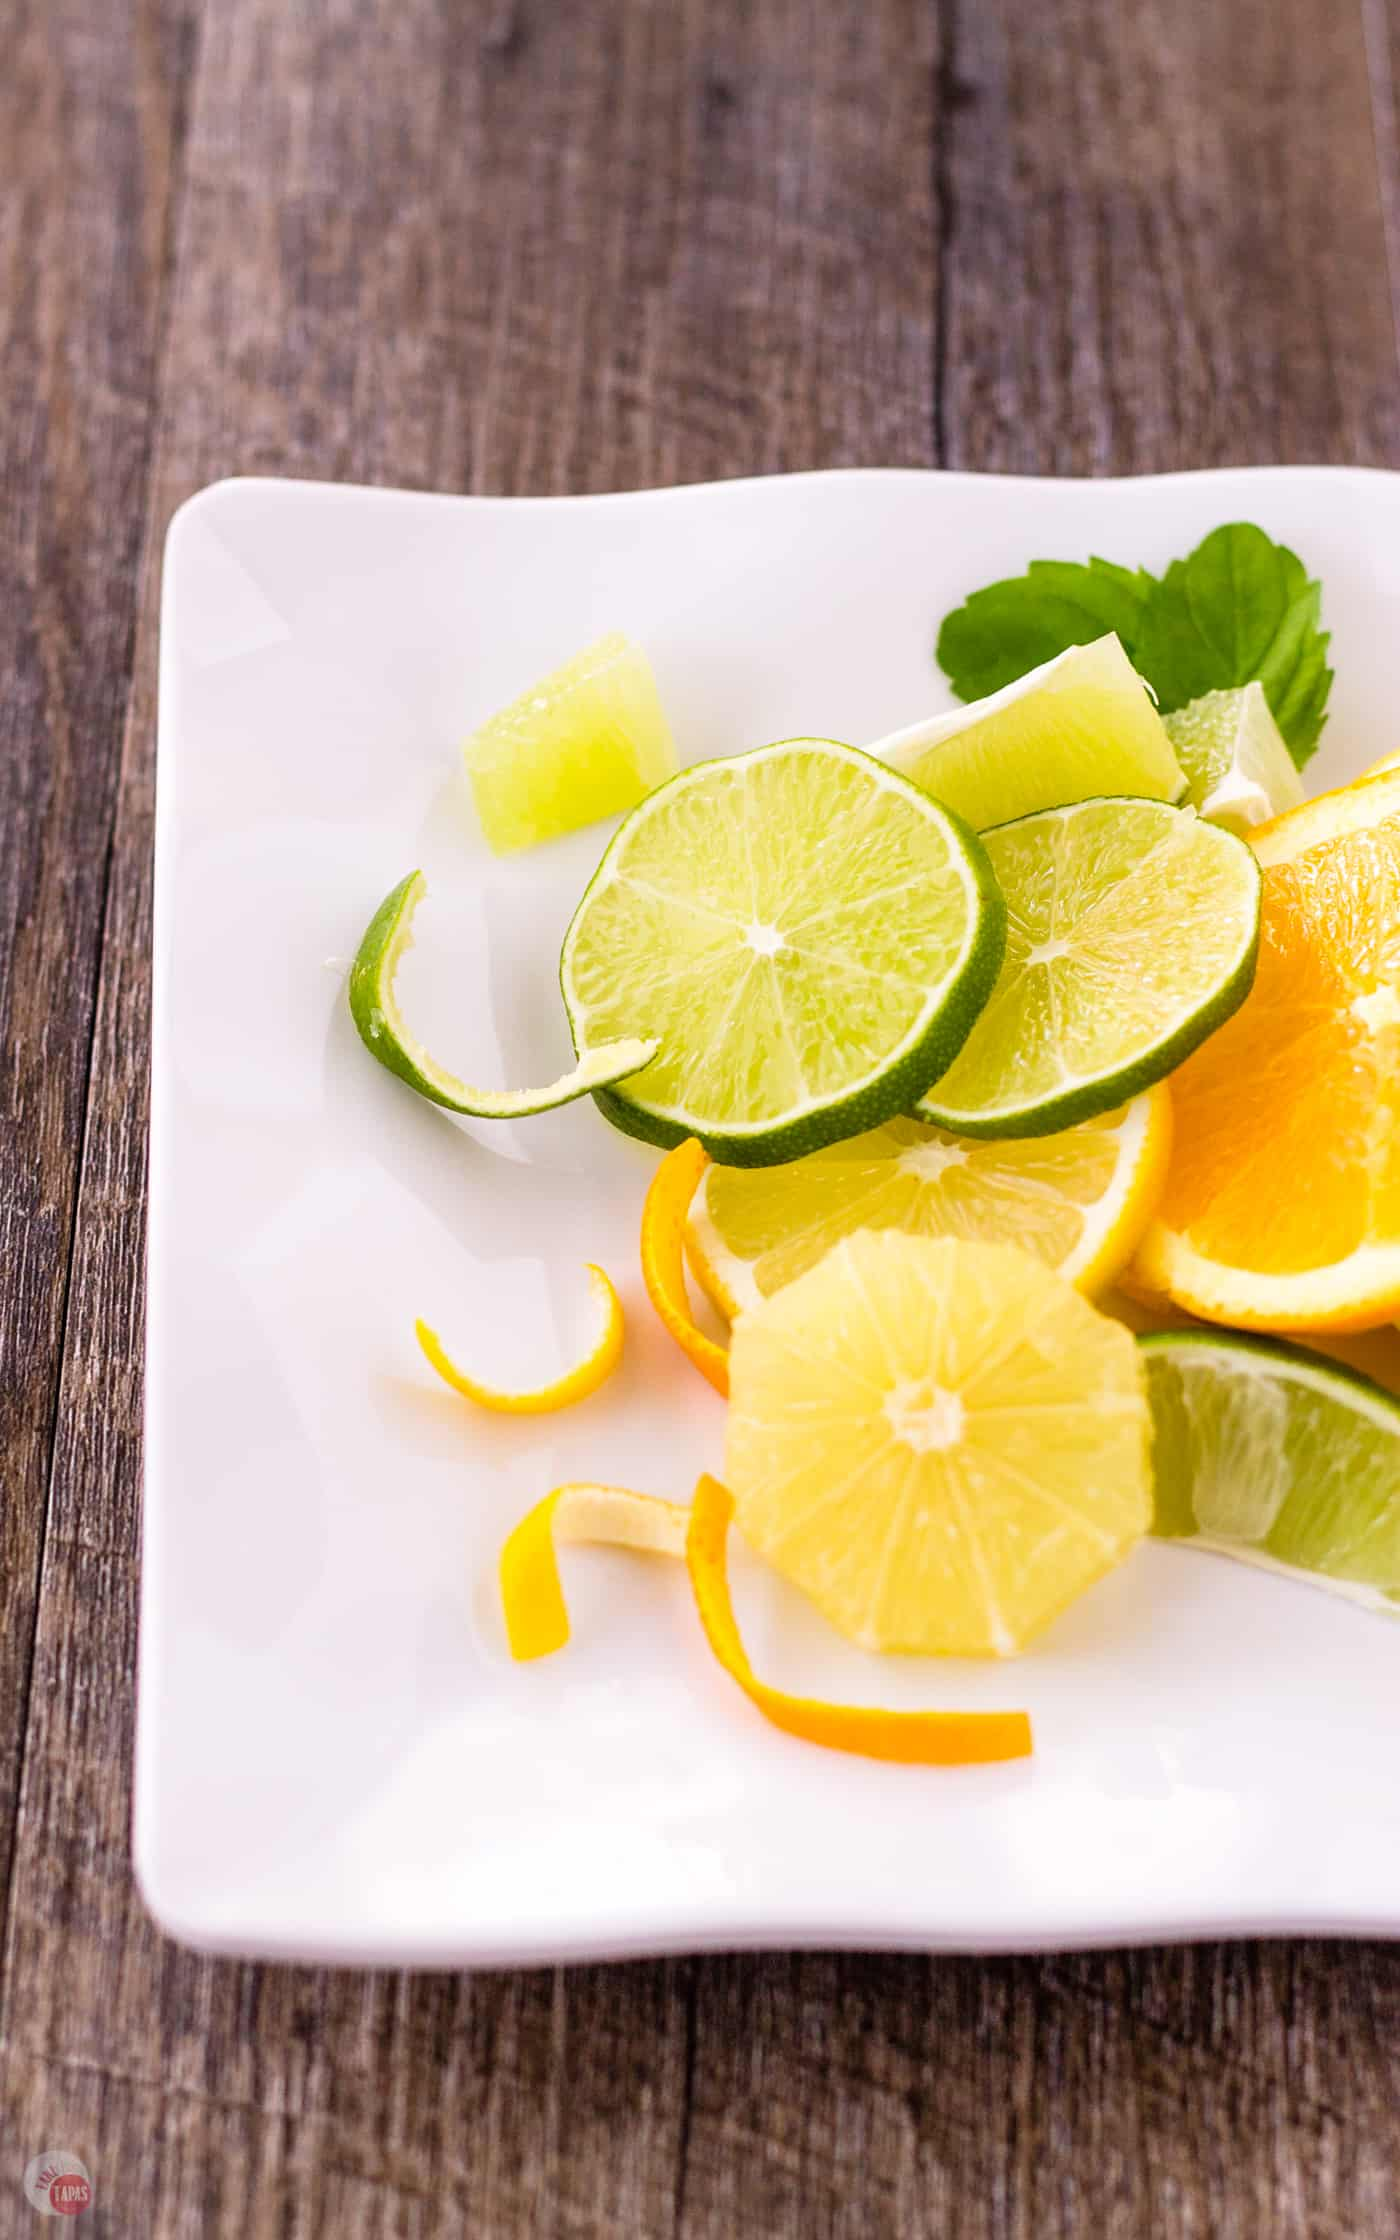 slices of Oranges, Lemons, Limes on a plate